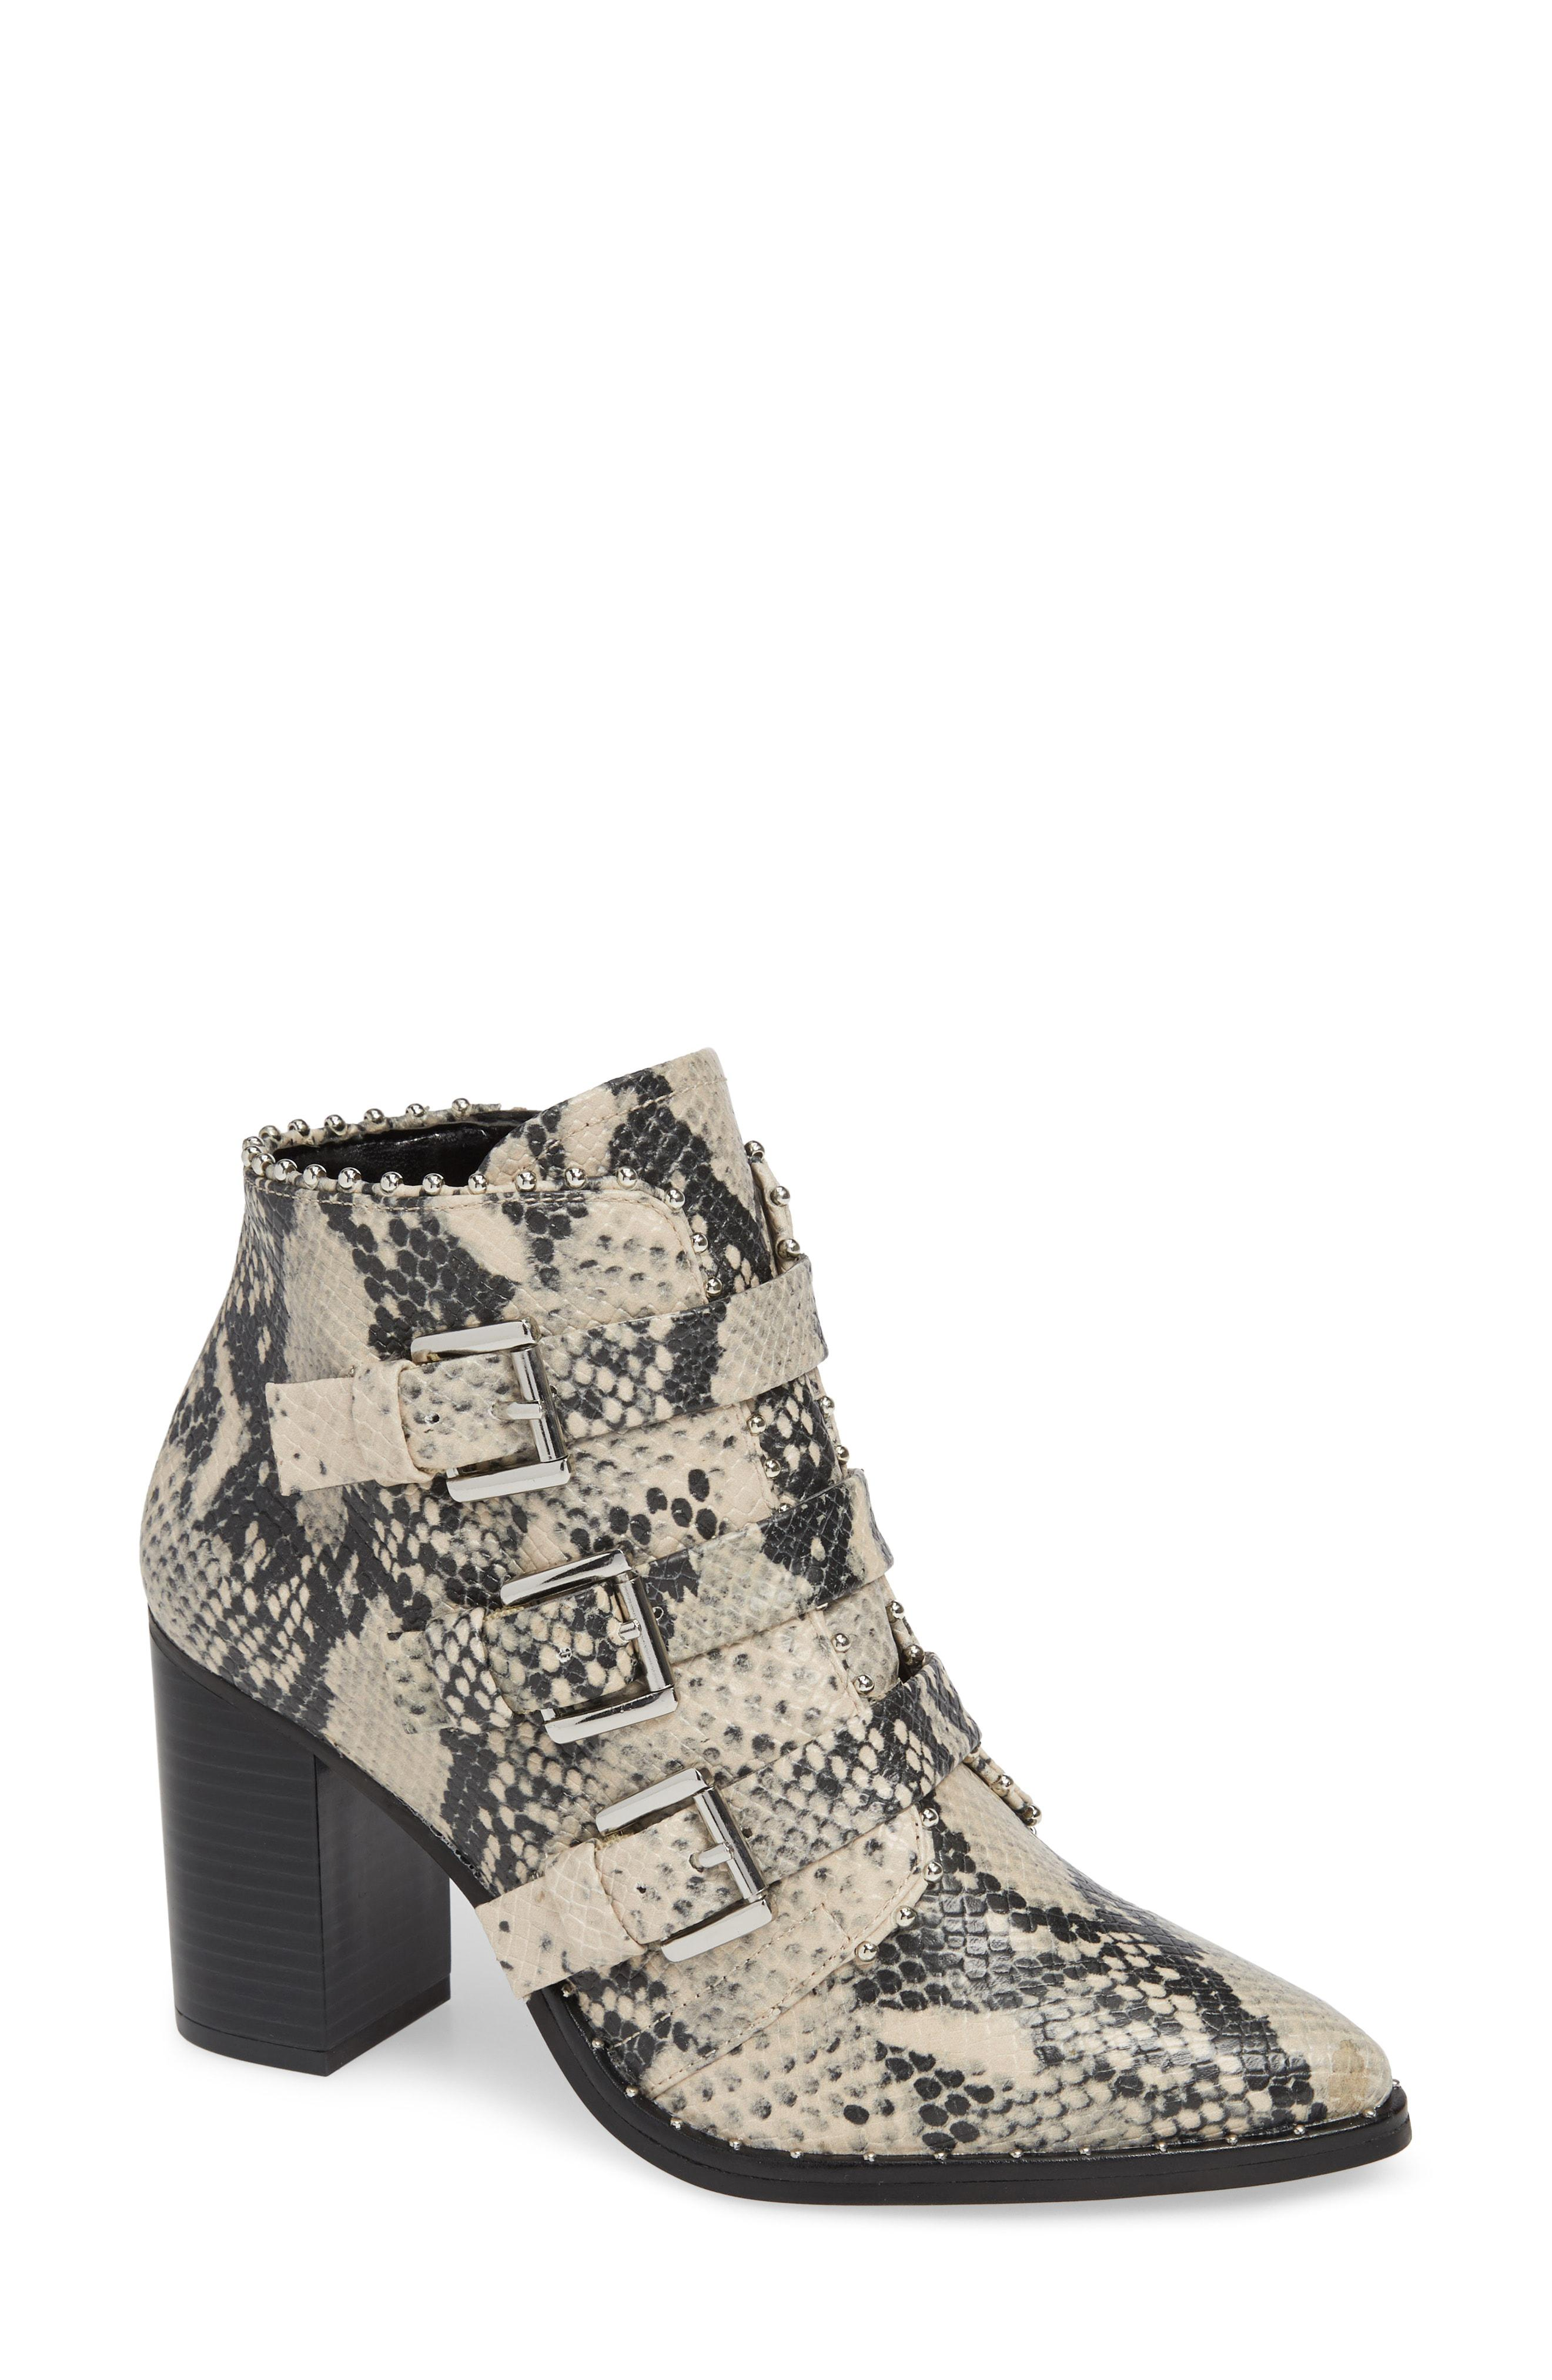 a6f41771237 Steve Madden Black Humble Bootie